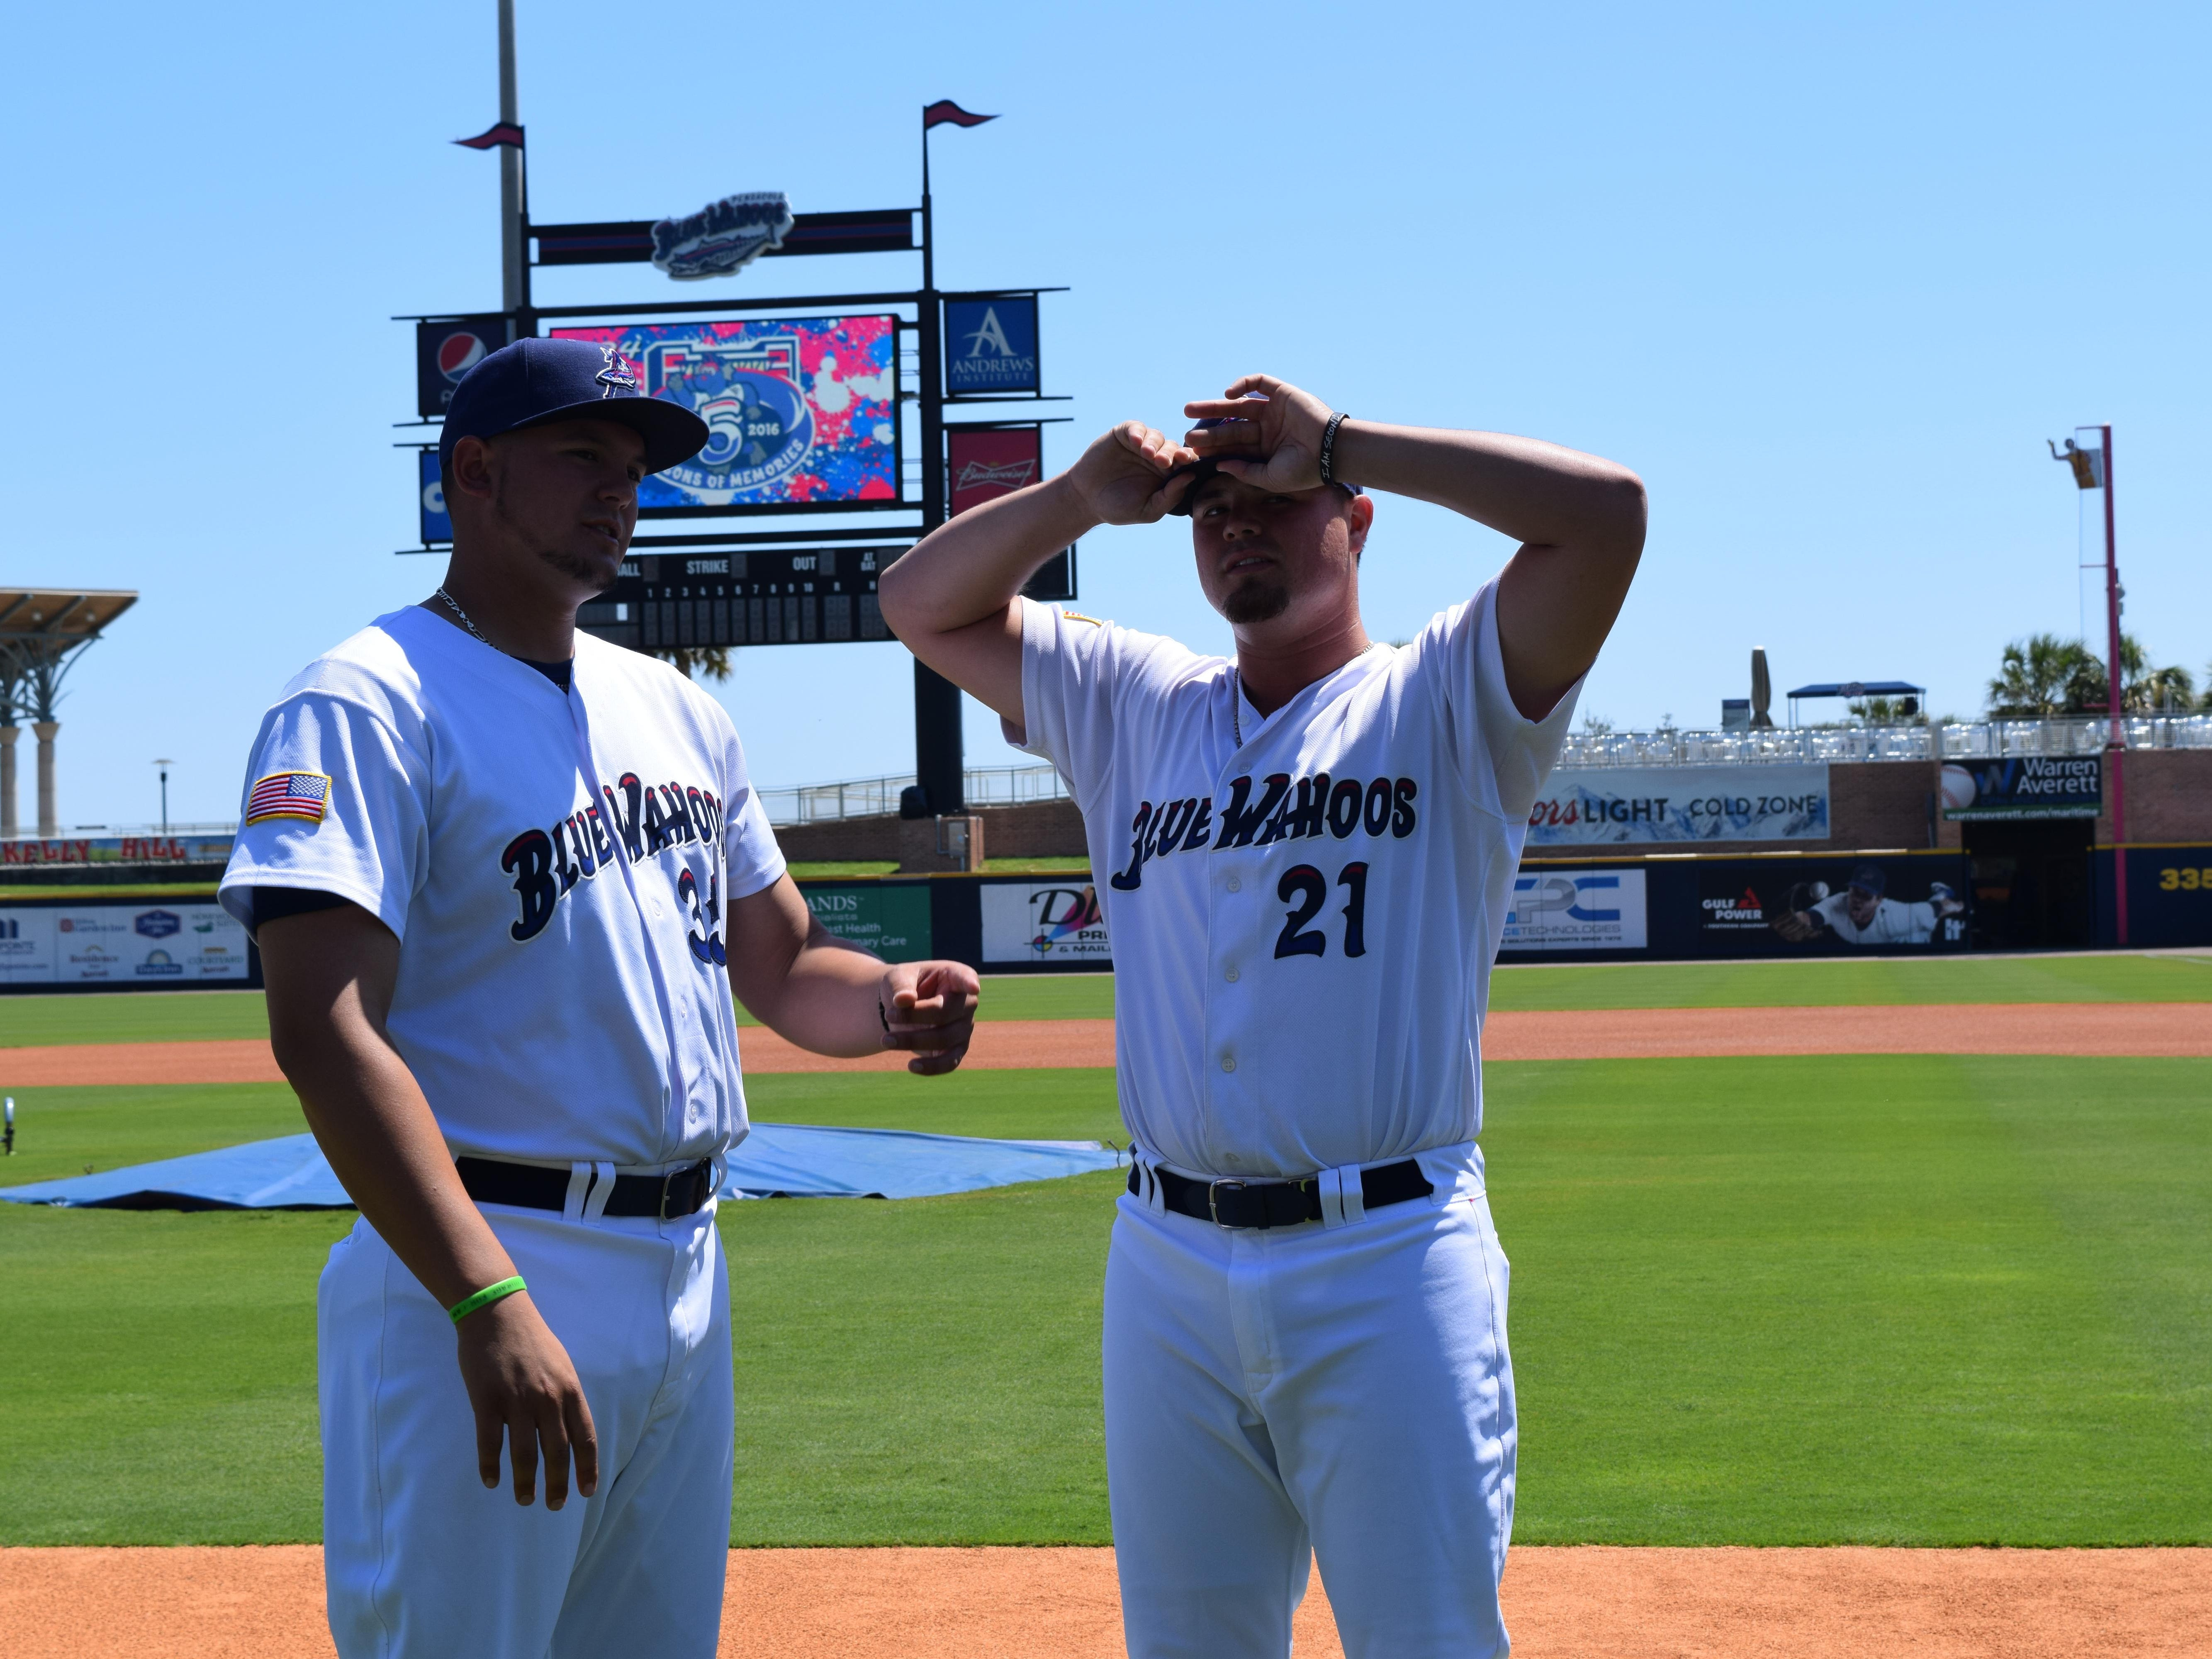 Blue Wahoos pitcher Nick Travieso, 21, named the opening day starter, chats with fellow pitcher Nick Routt prior to Tuesday's practice. Travieso played against Pace High as first baseman in the 2012 Class 6A state championship.